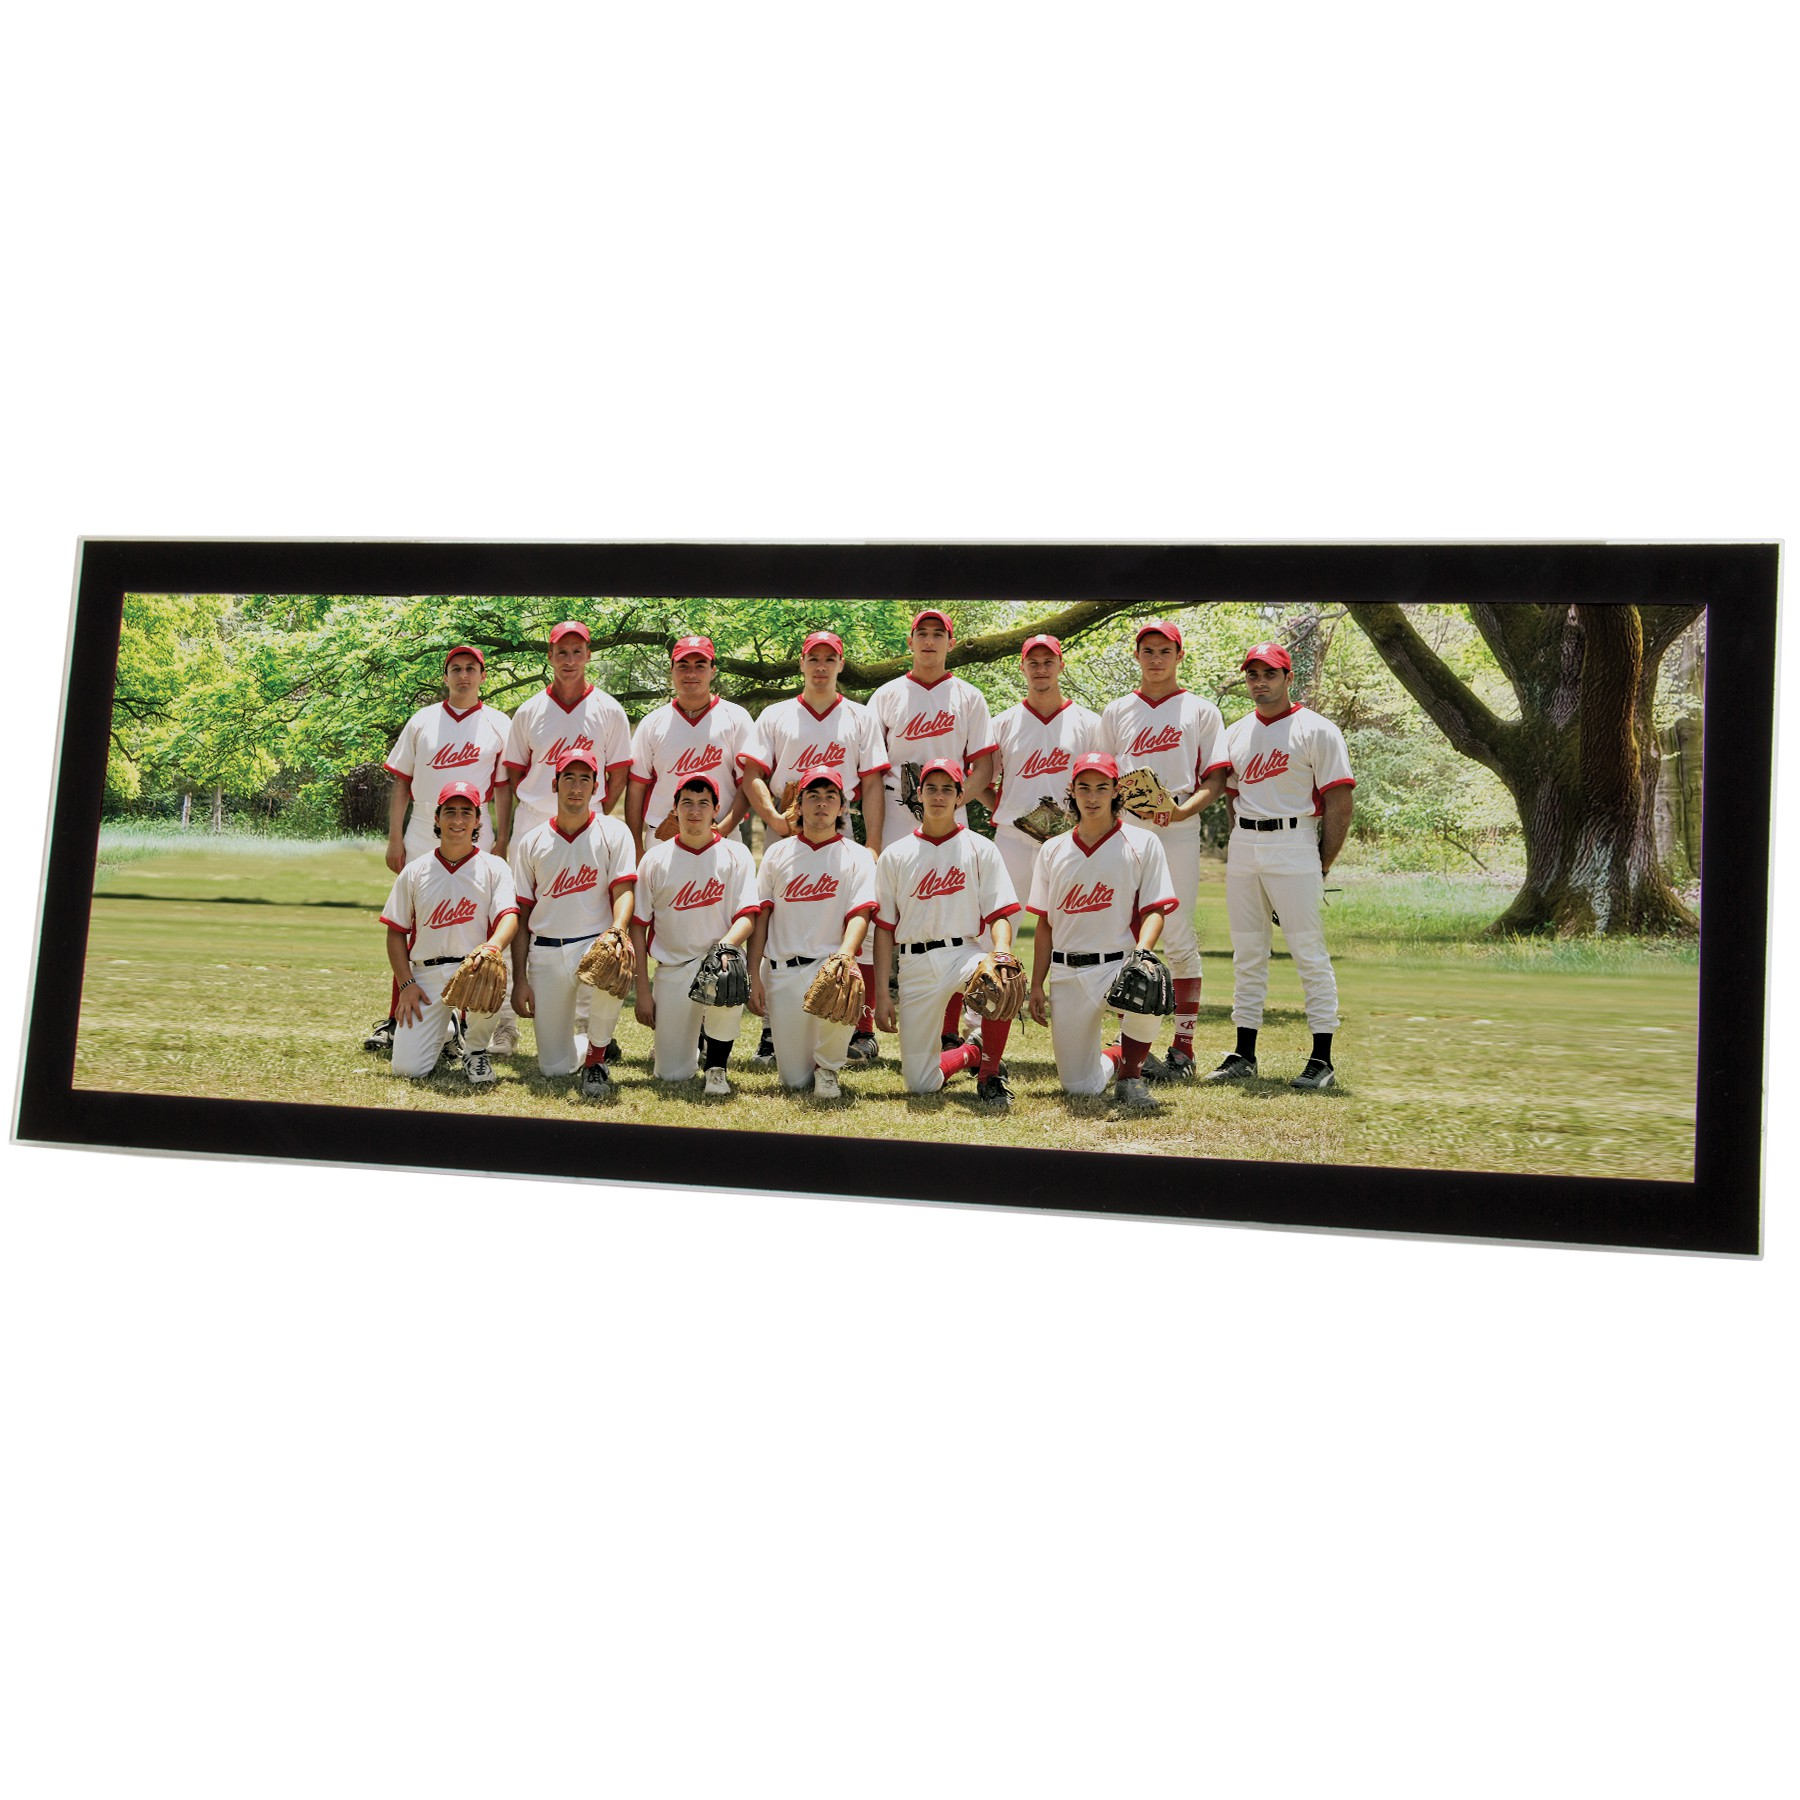 24 x 8 acrylic panoramic picture frame